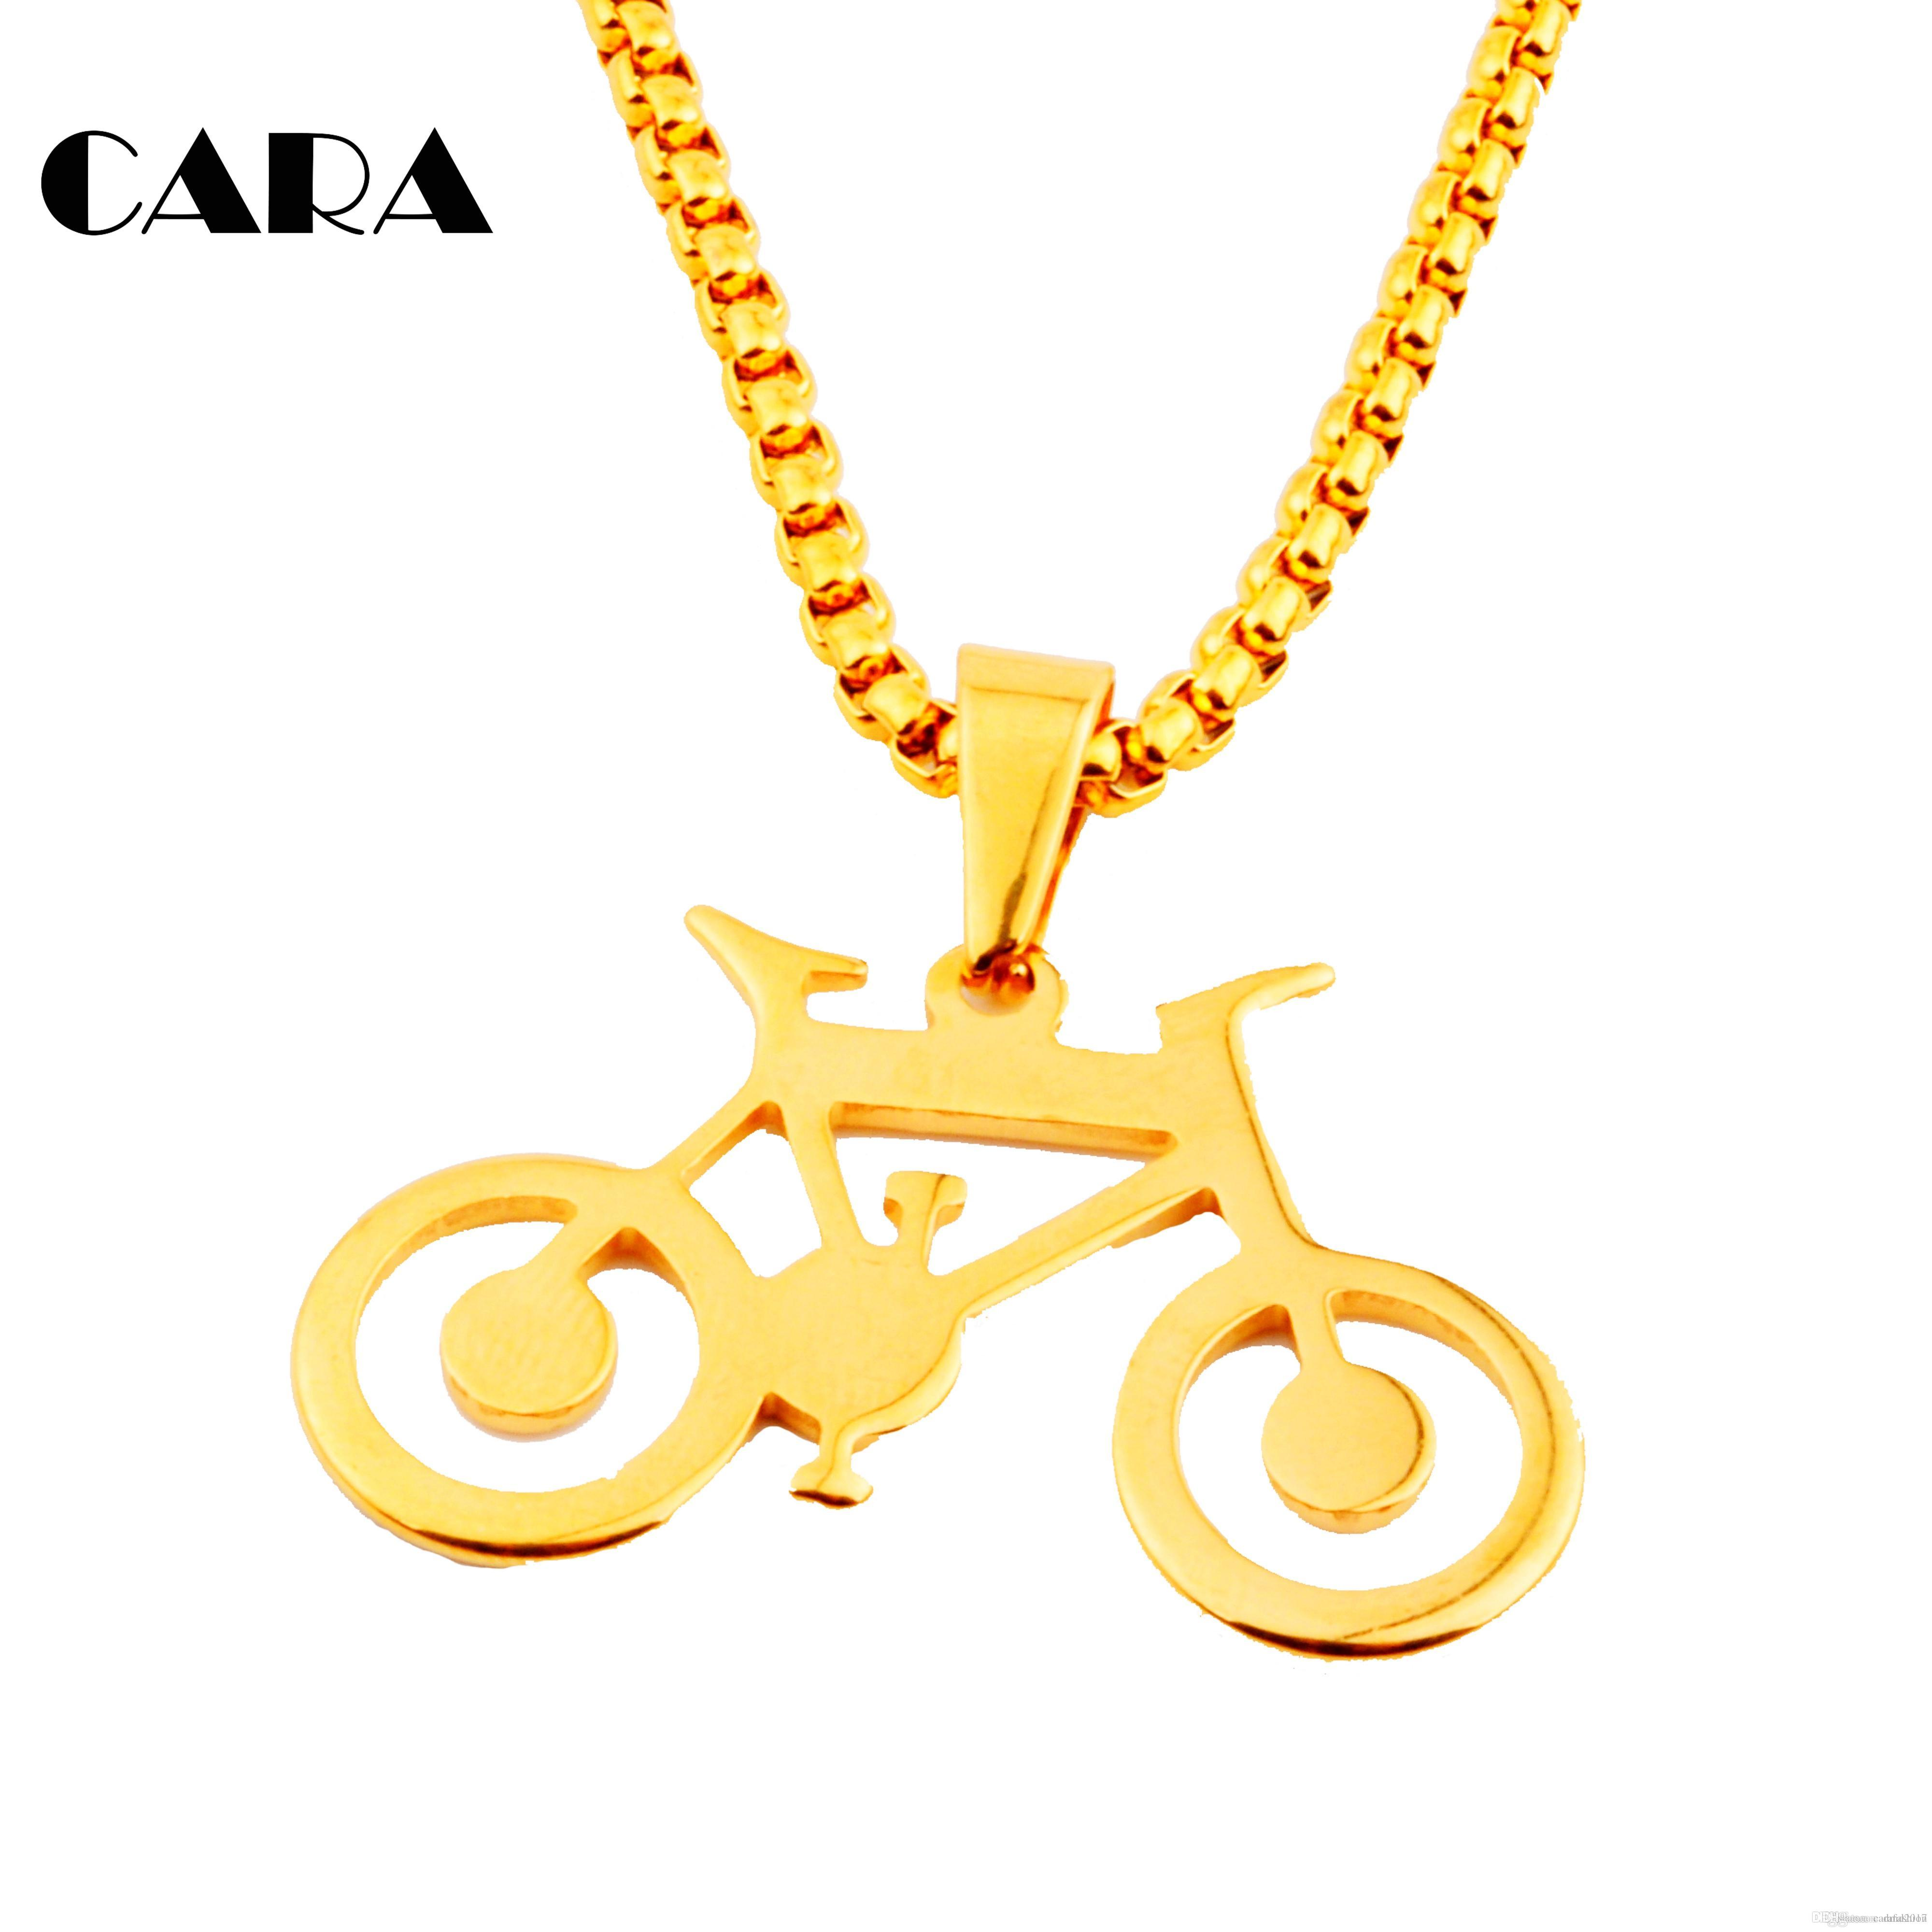 2017 New Arrival Unisex stainless steel bicycle bike pendant necklace hip hop necklace chokers necklace for men ,CAGF0001